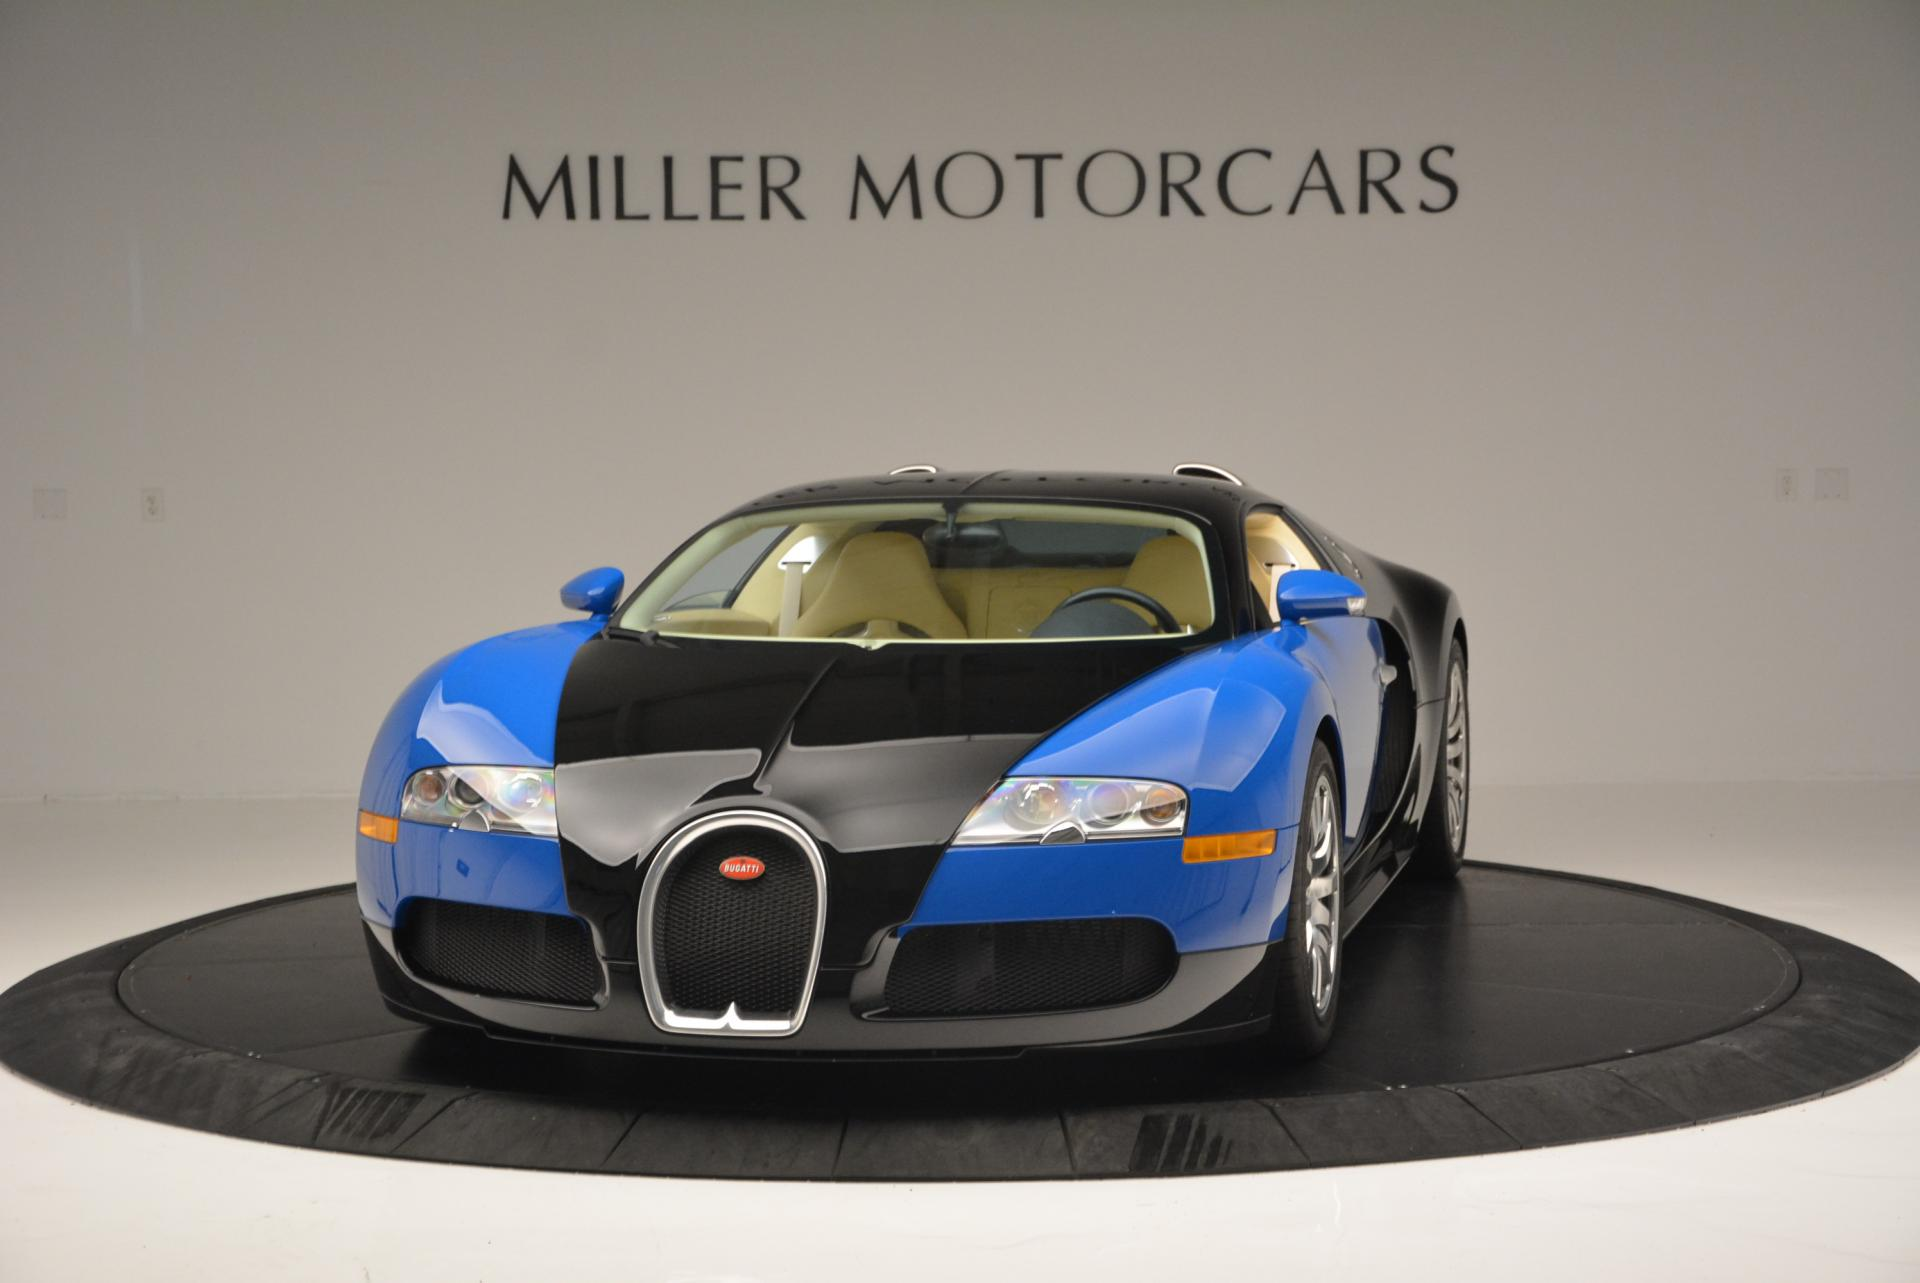 Used 2006 Bugatti Veyron 16.4 for sale Sold at Maserati of Westport in Westport CT 06880 1